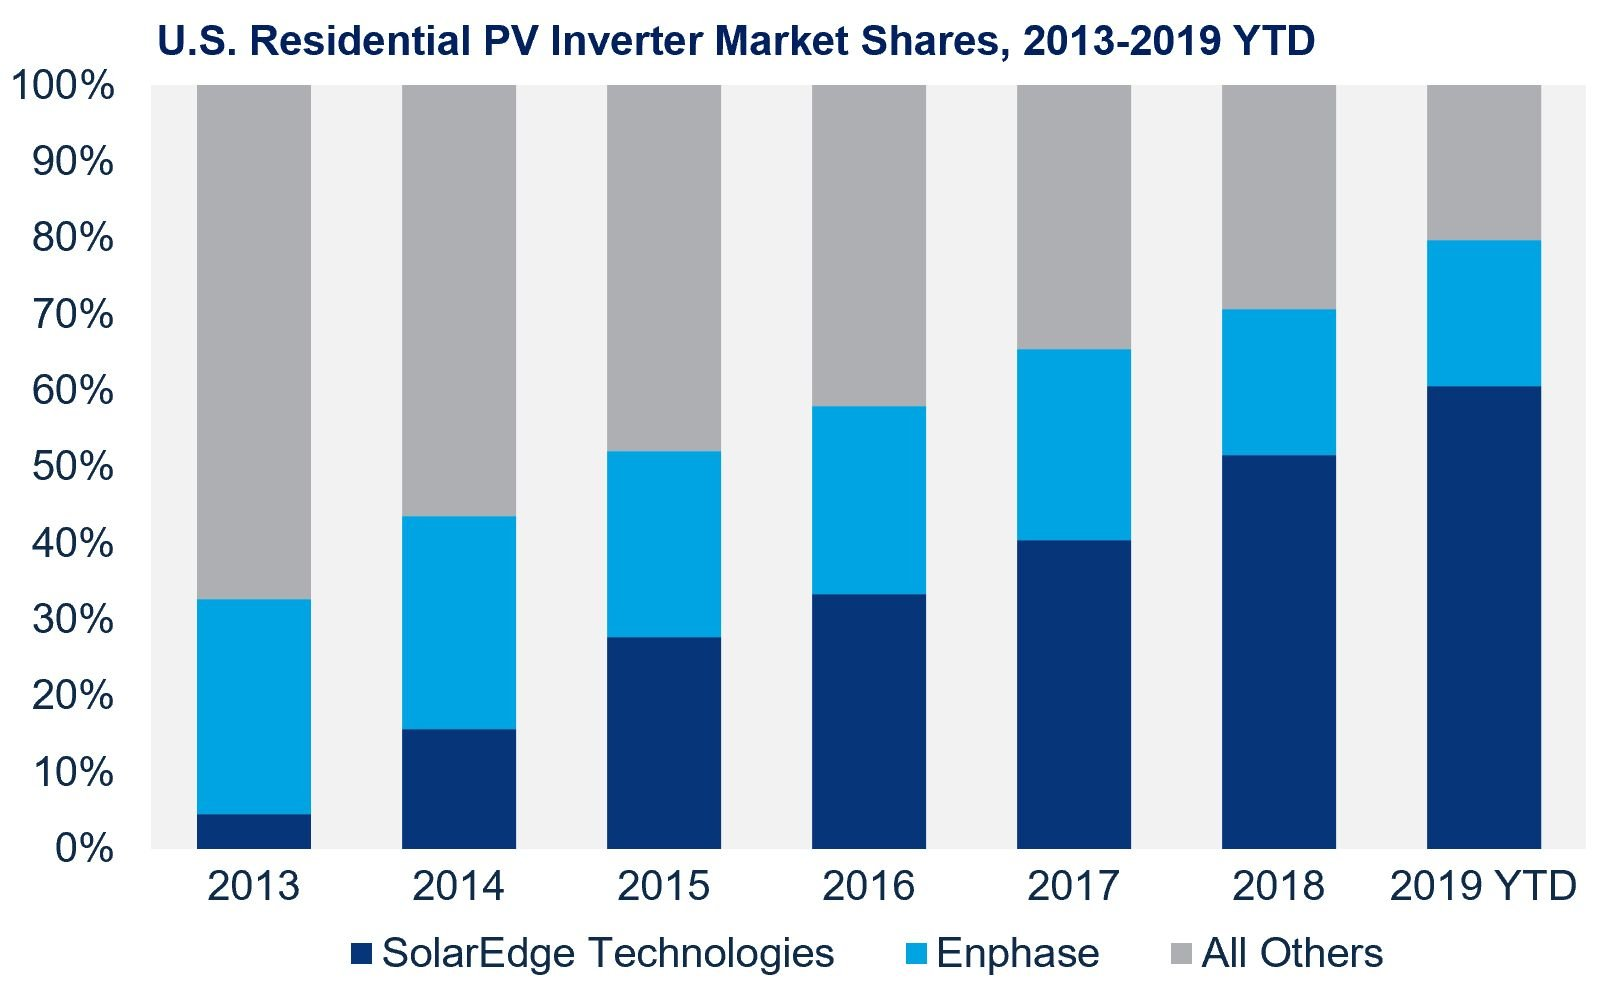 Chart showing annual US residential solar market shares for solaredge, enphase, and other.